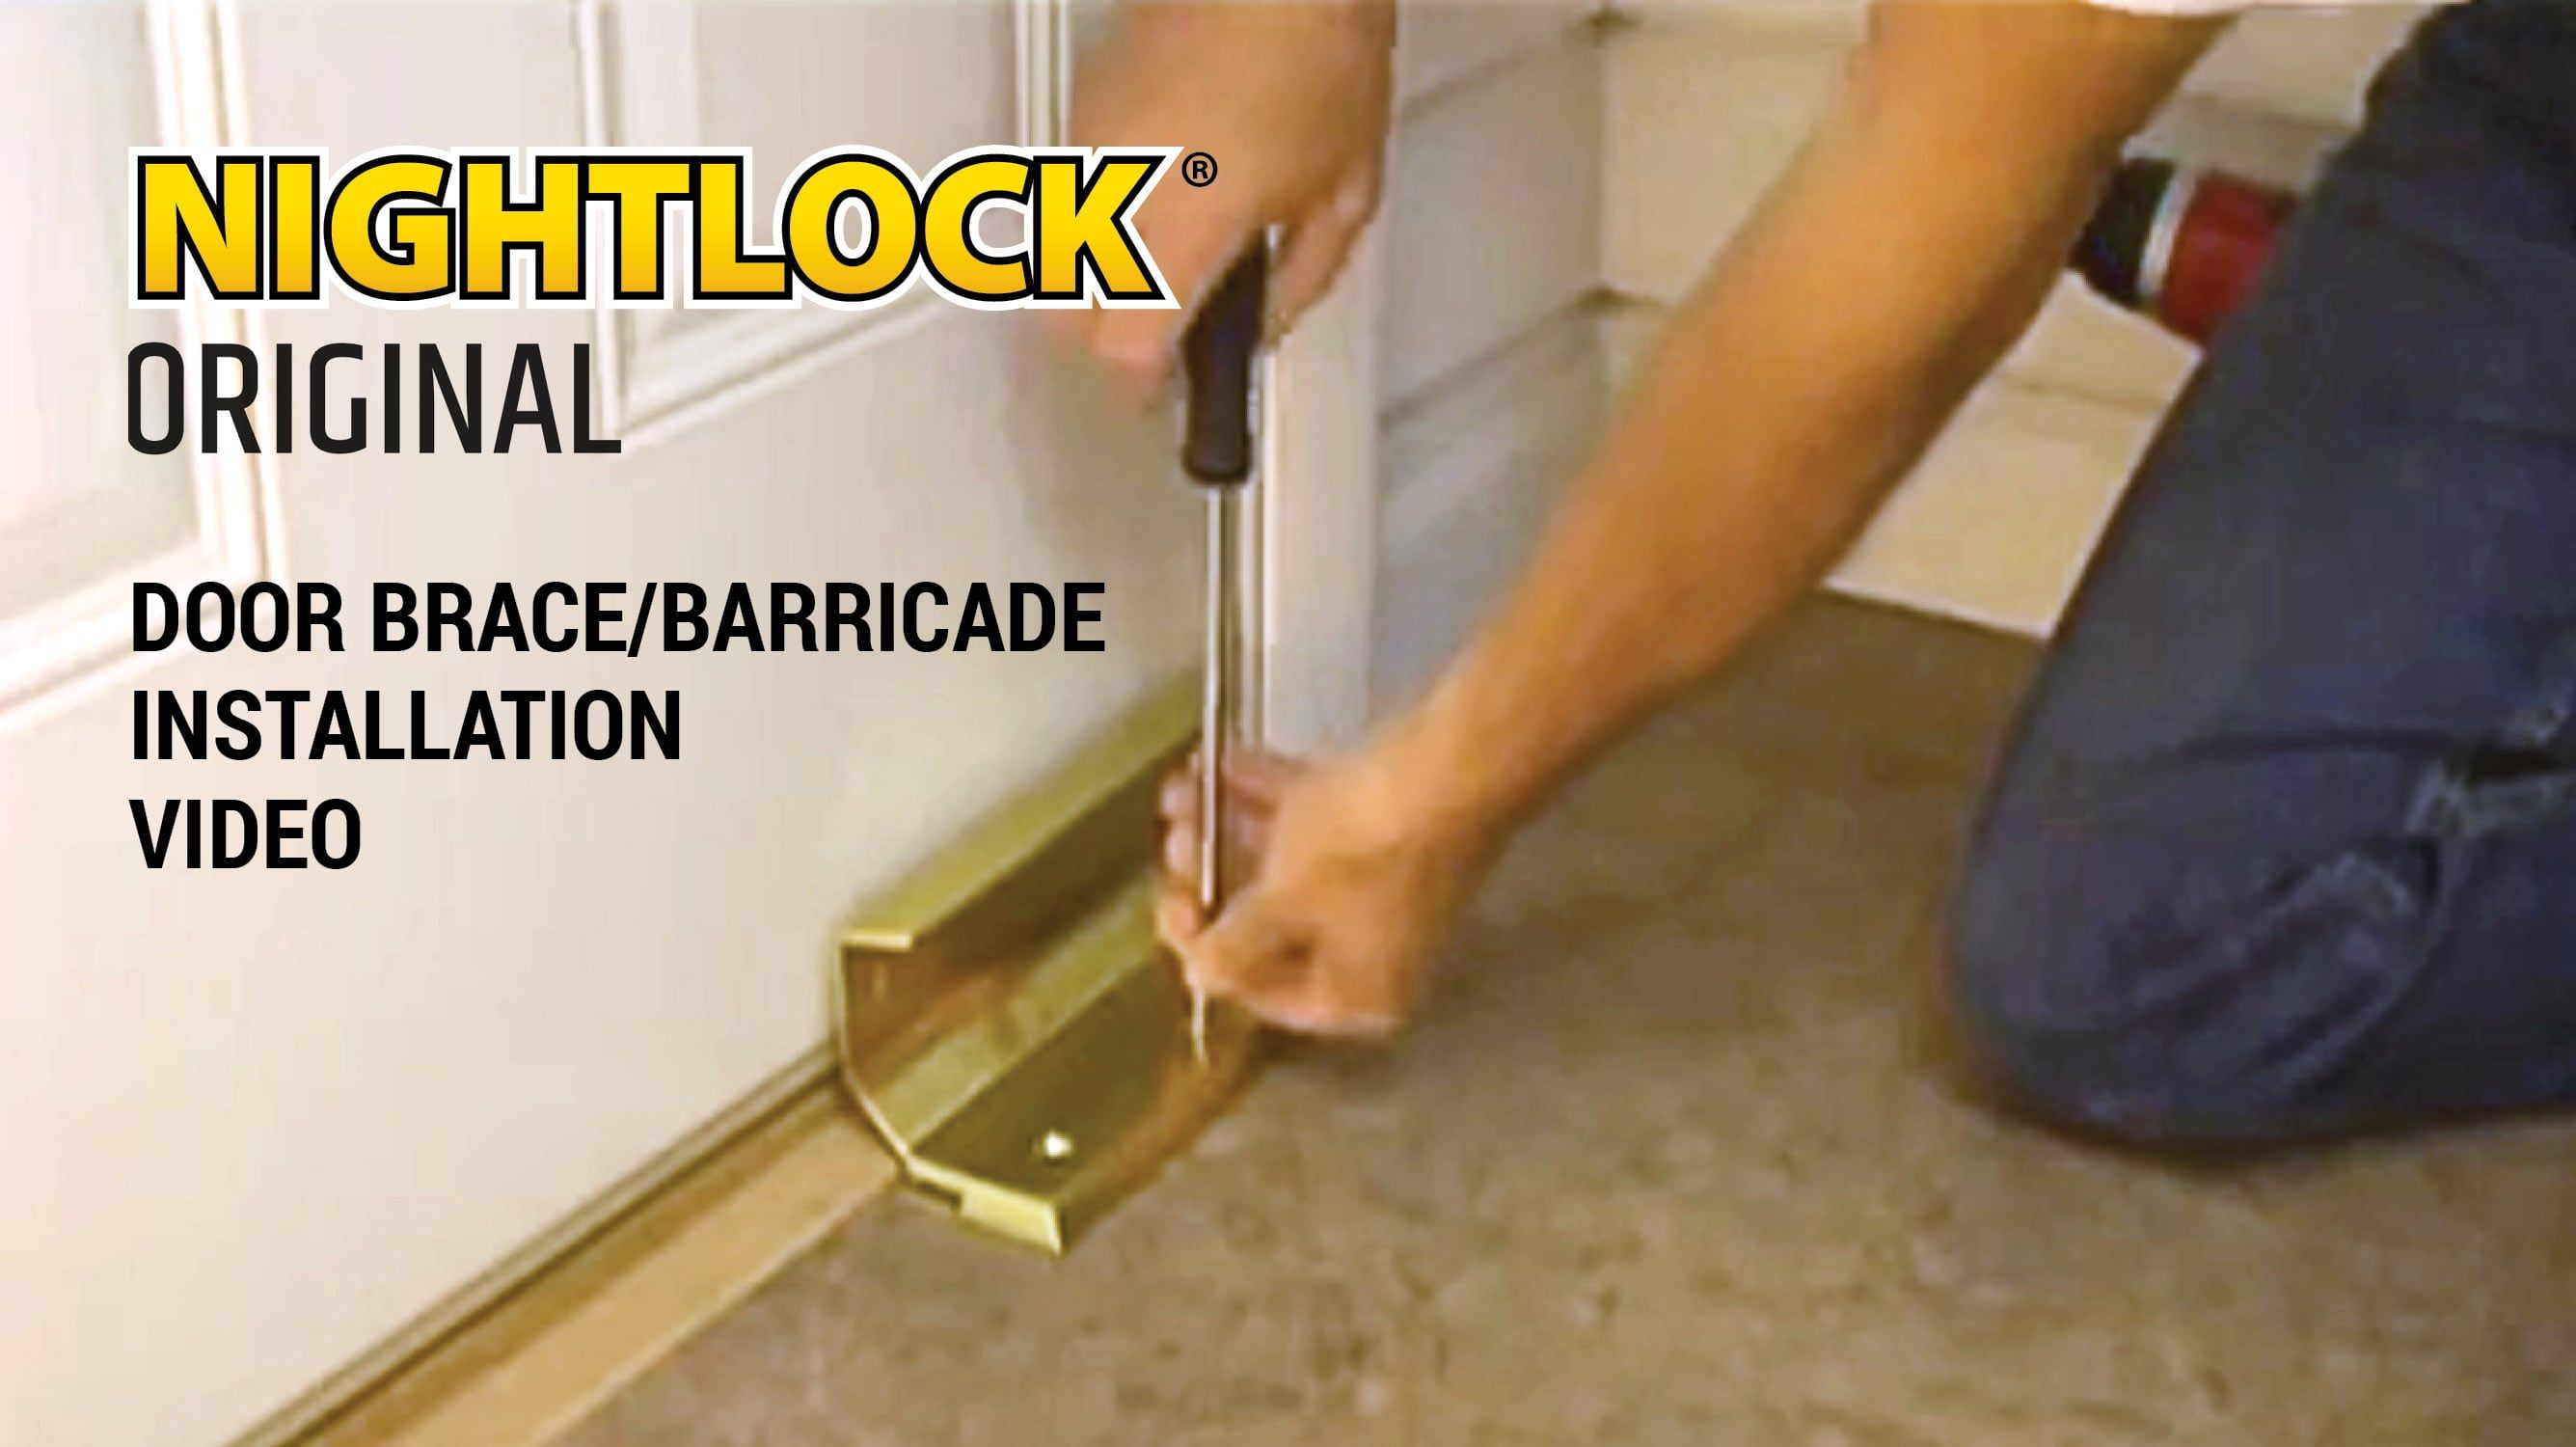 Nightlock Original Installation Video For Home Security Door Brace